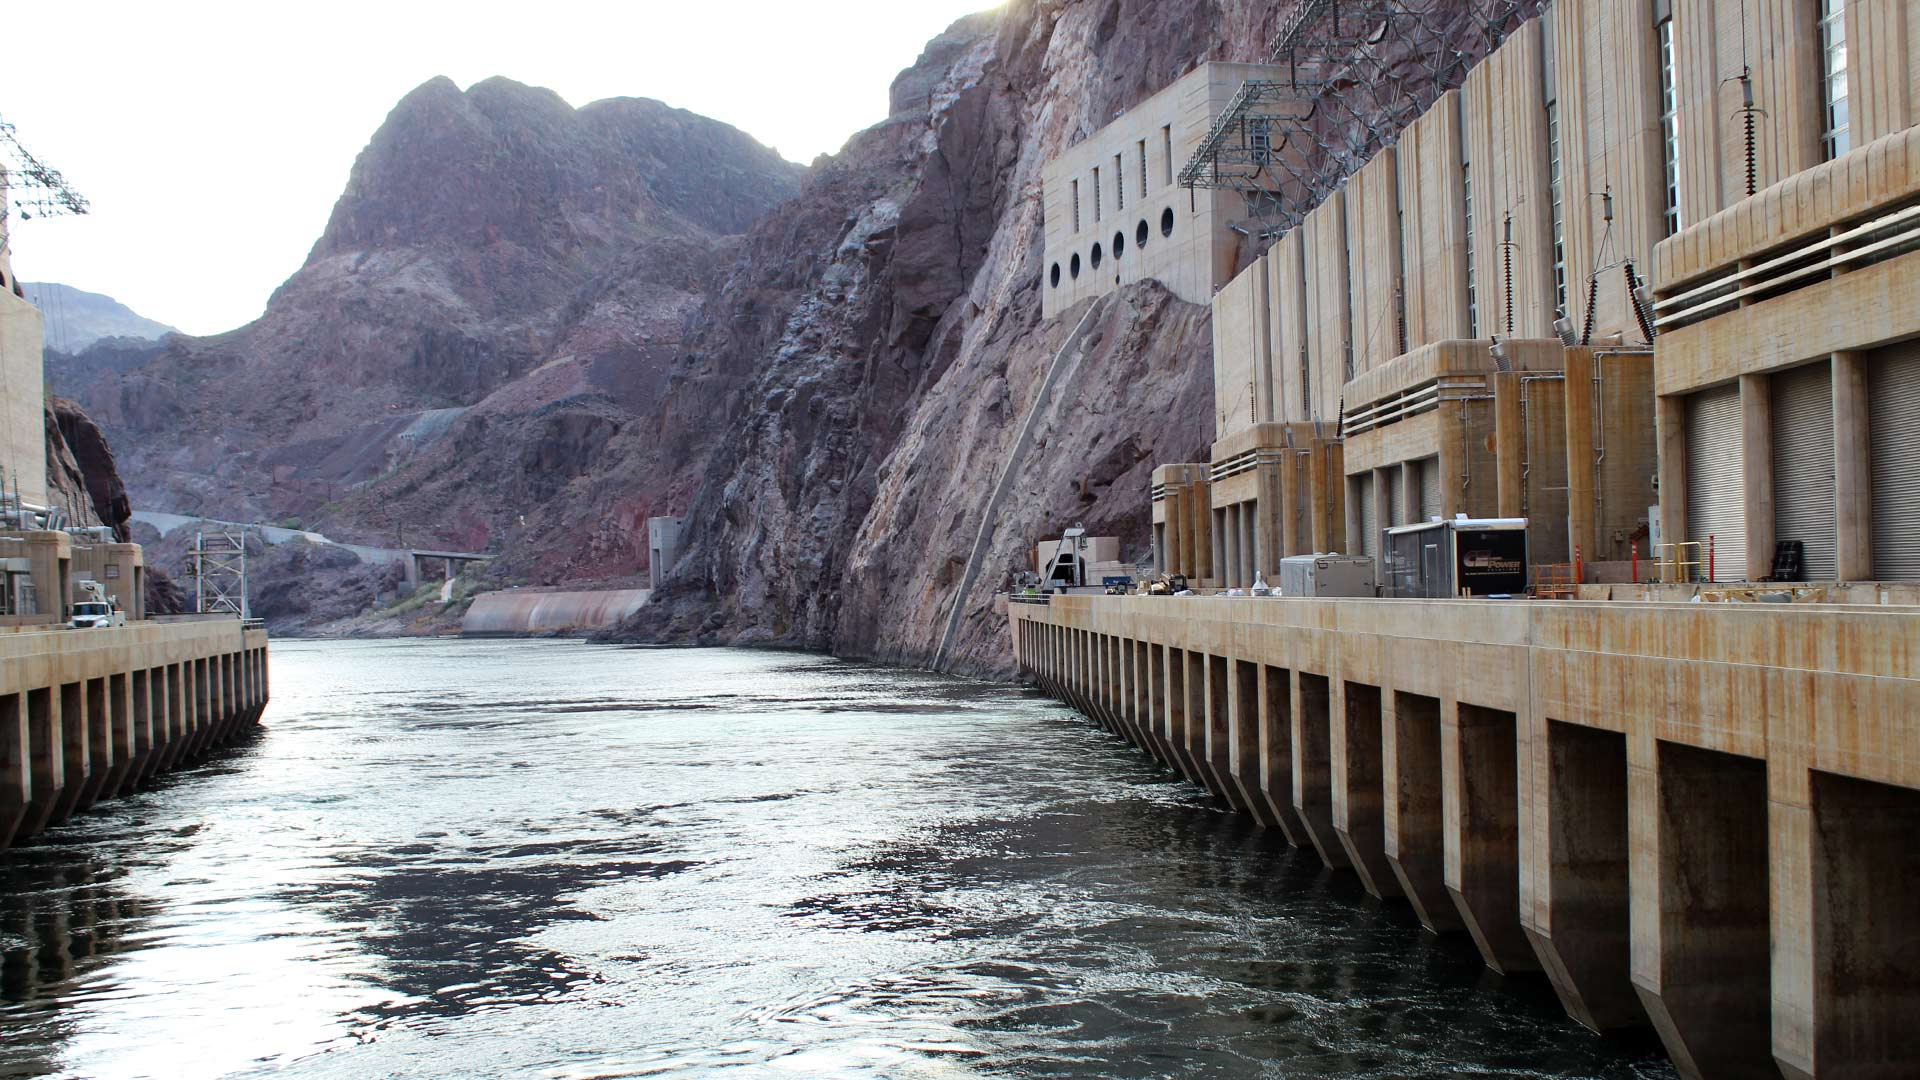 Water is released from Lake Mead outside Las Vegas through Hoover Dam. The reservoir's level is at the center of a dispute over water conservation between the river's Upper and Lower Basin states, February 18, 2018.